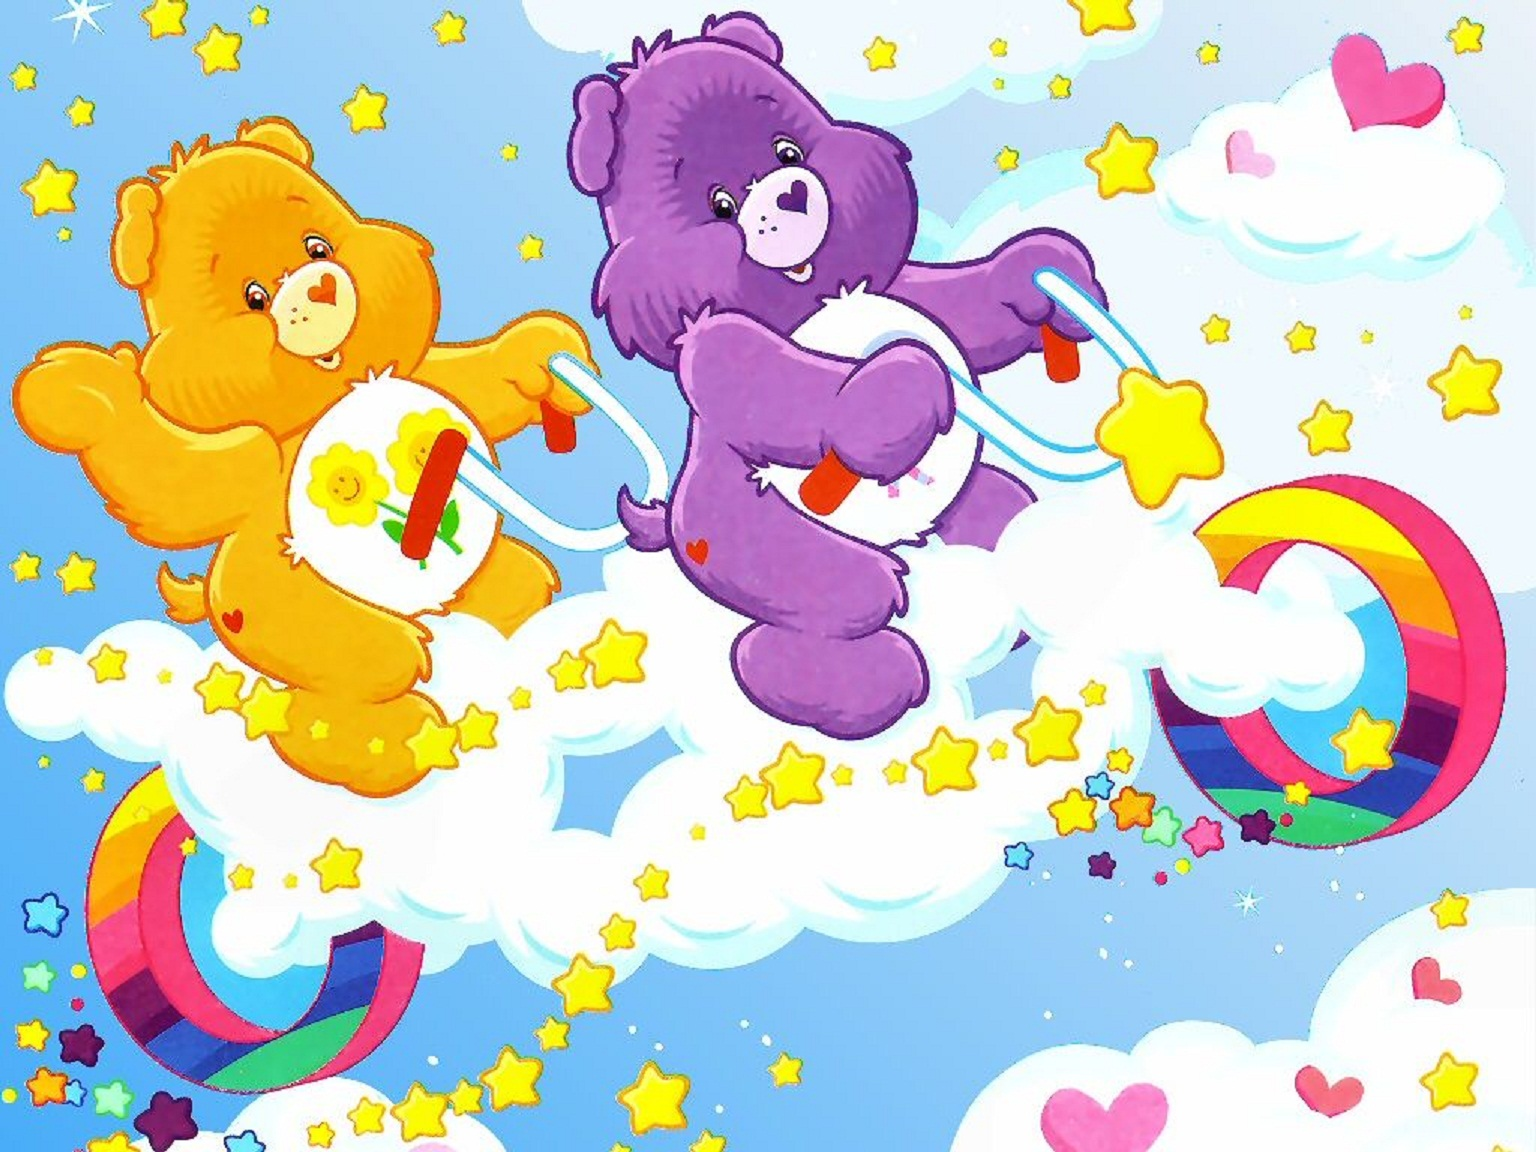 Disney hd wallpapers care bears hd wallpapers - Care bears wallpaper ...